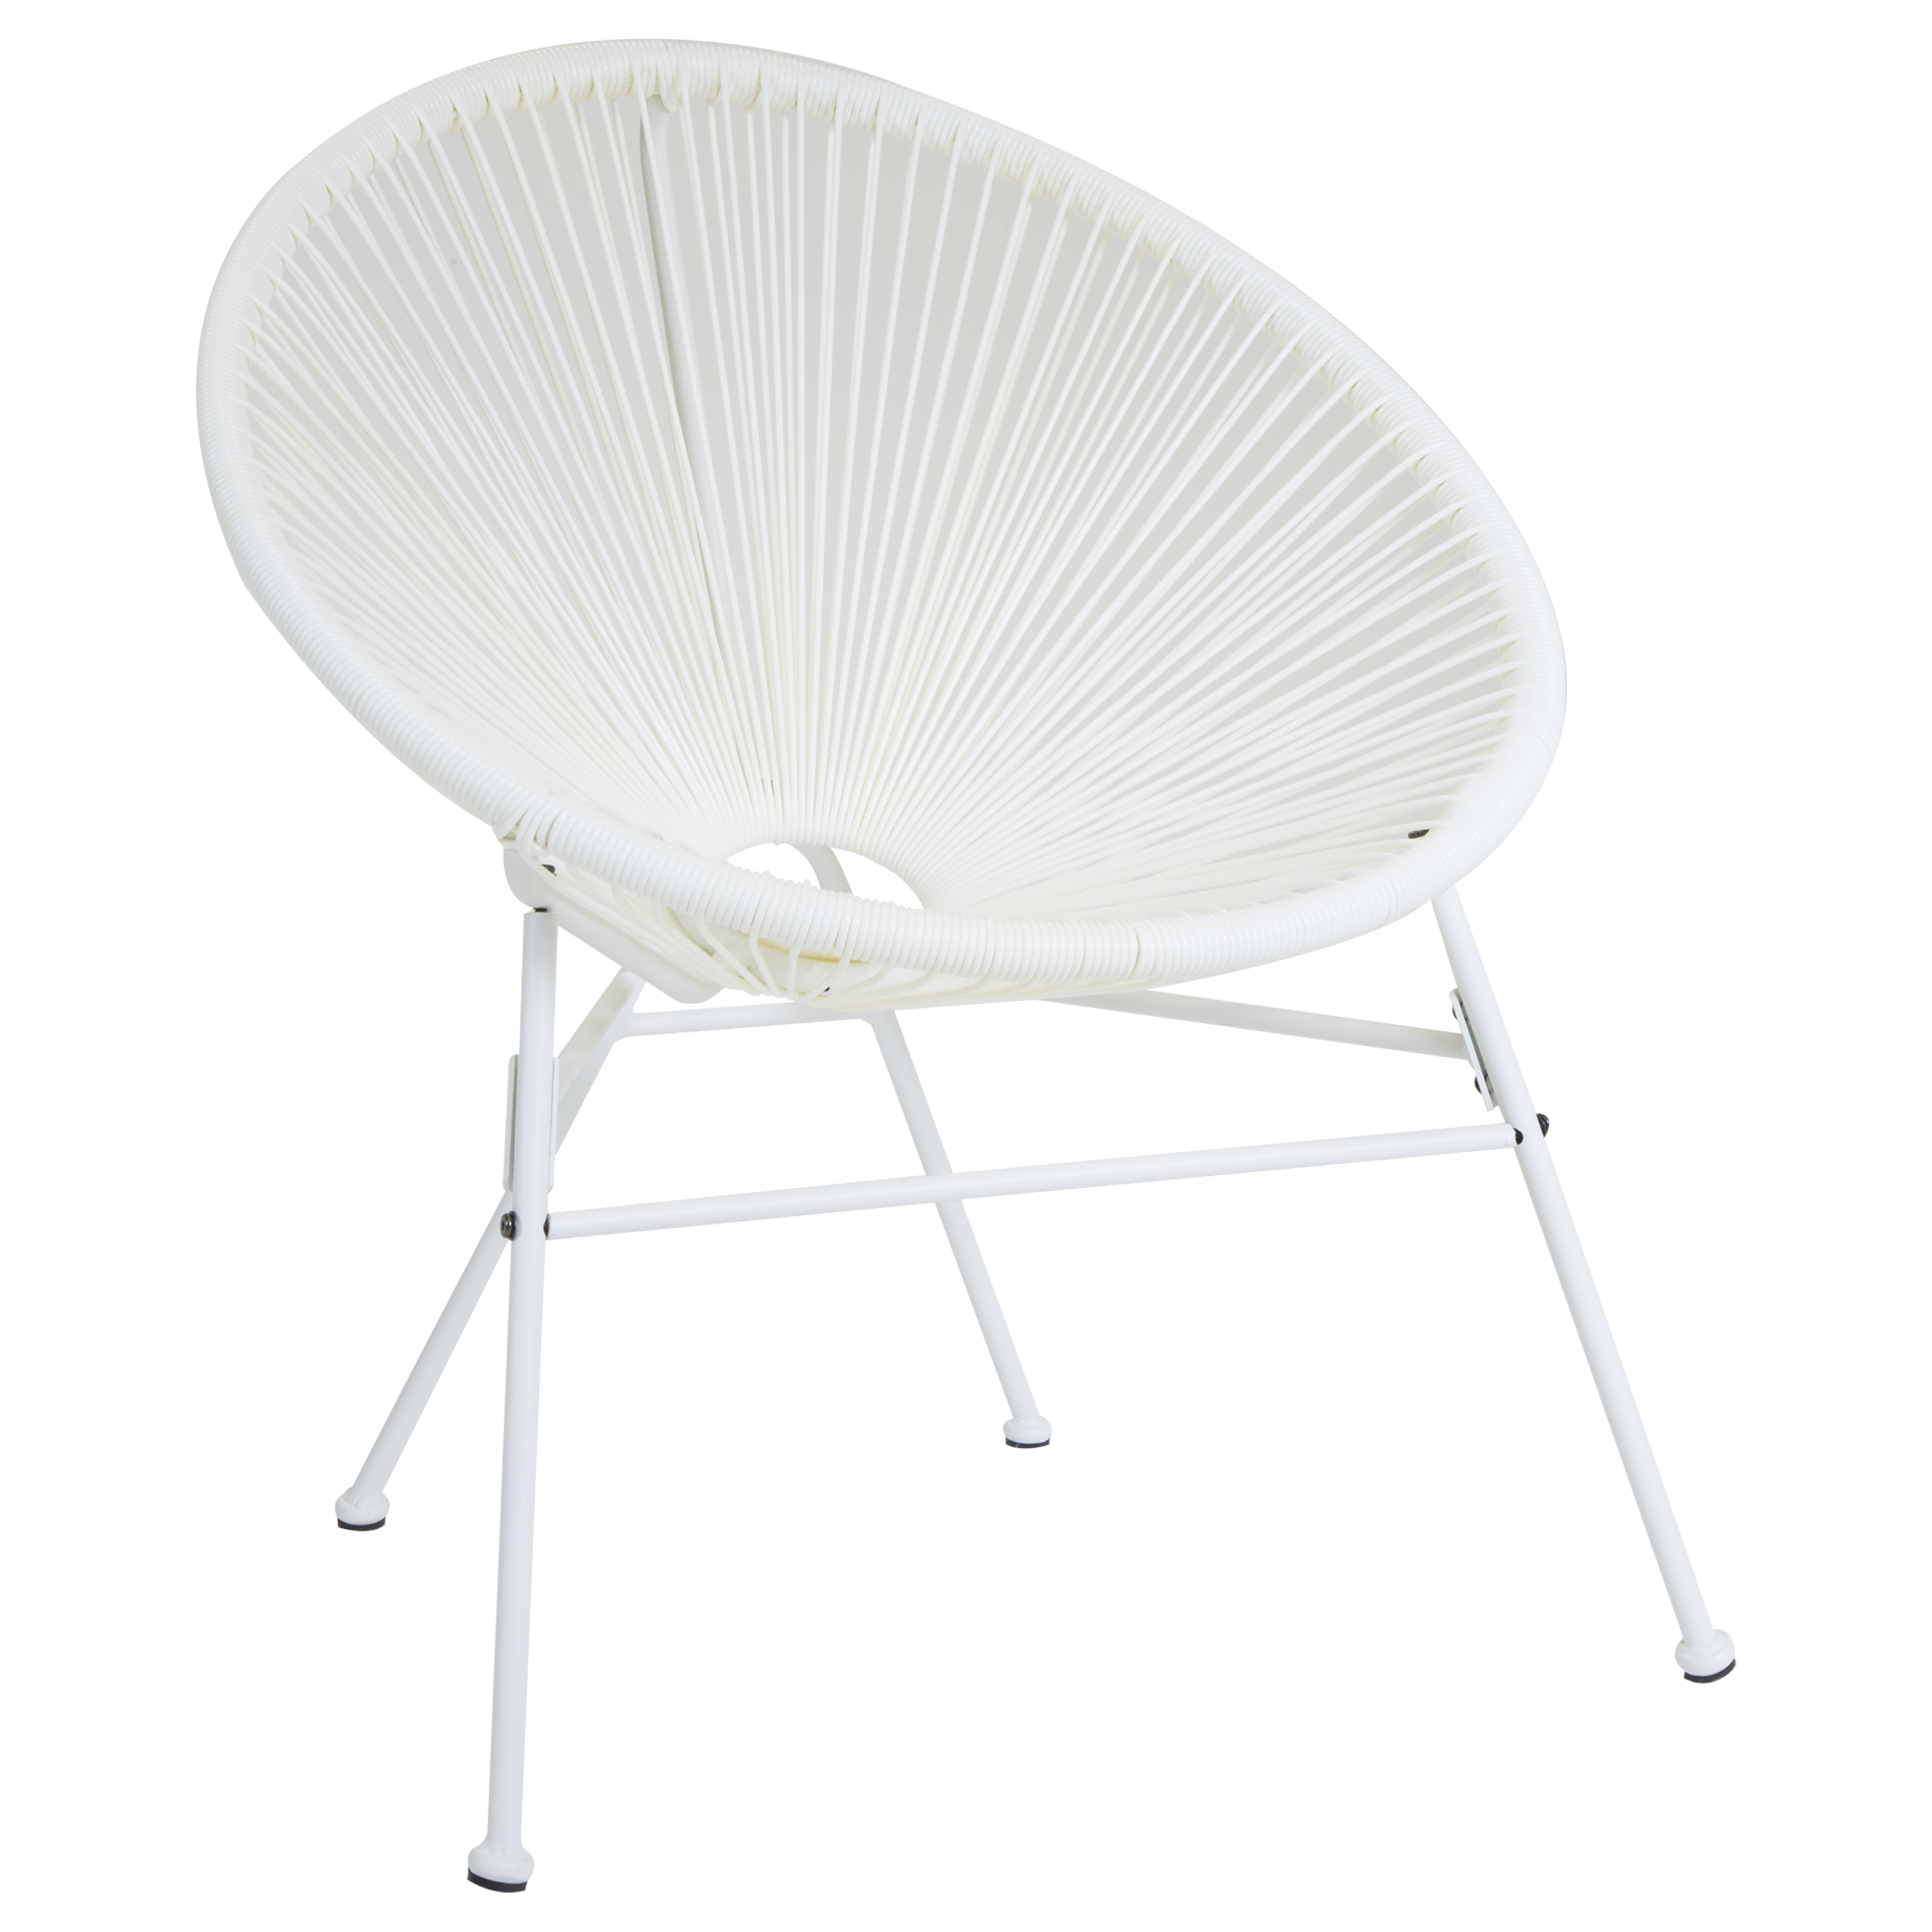 Sessel Im Retro Stil Charles Bentley Lounge Sessel Für Garten Retro Stil